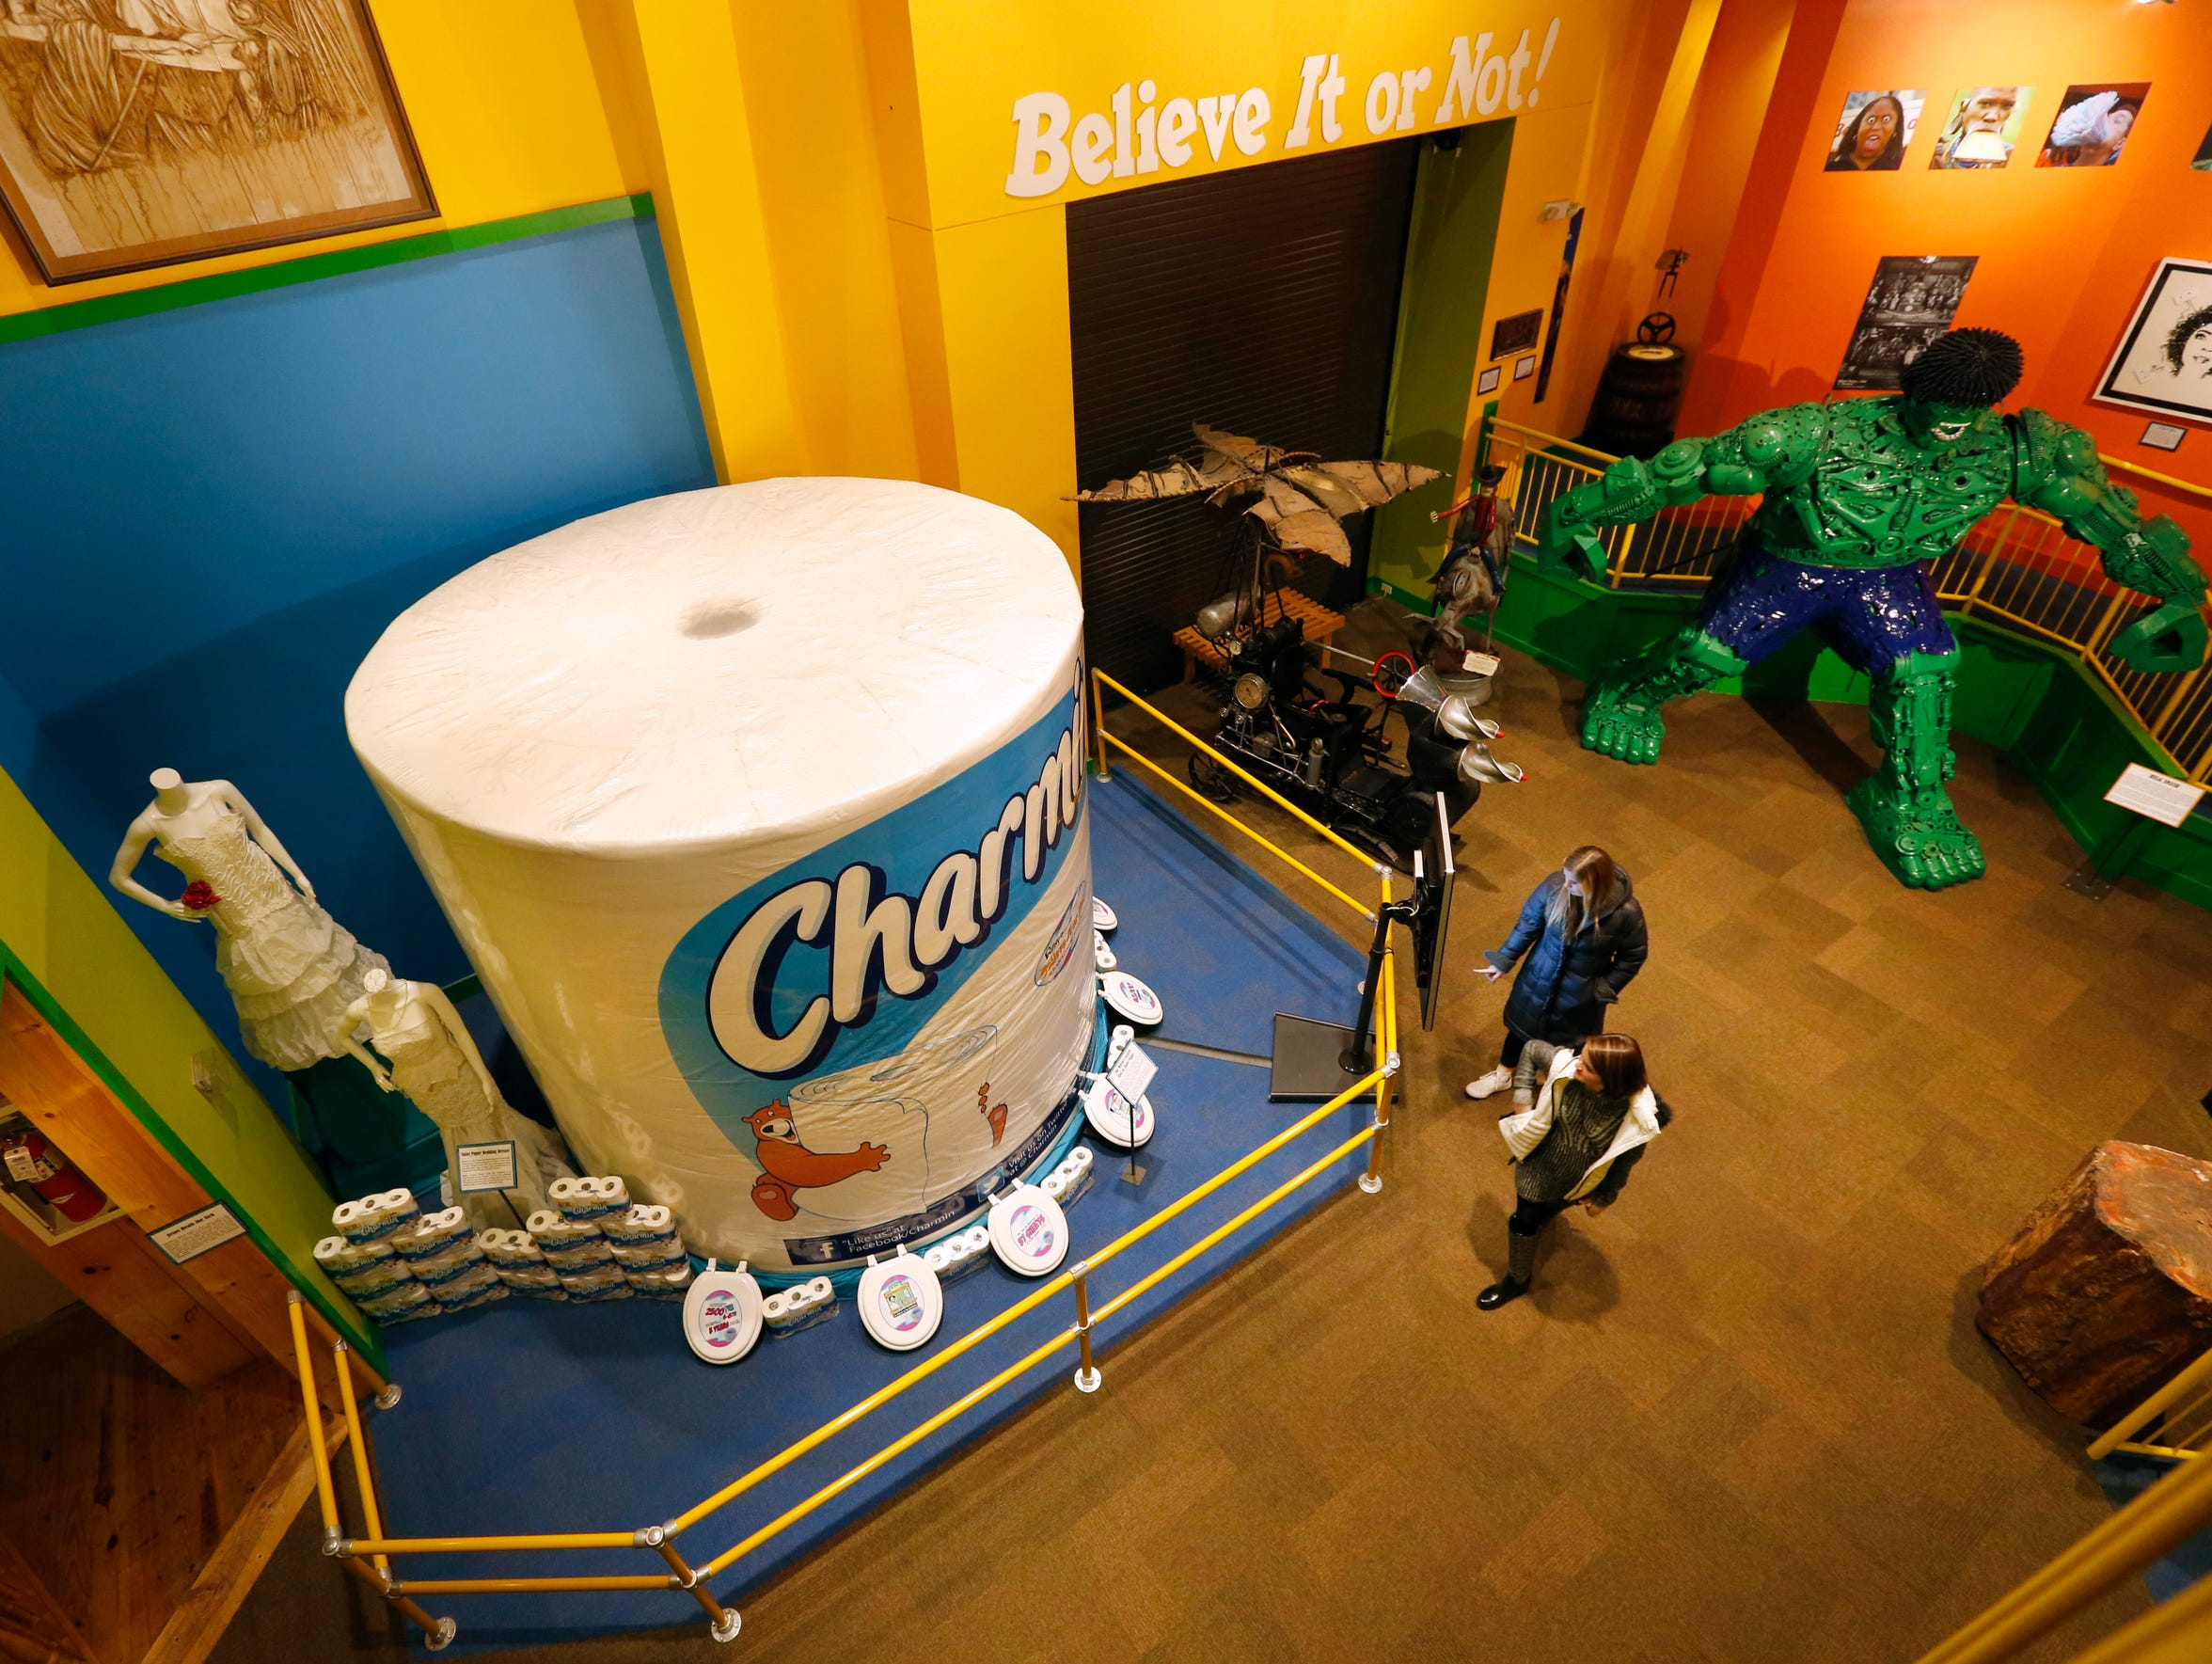 a giant roll of Charmin and an Incredible Hulk made